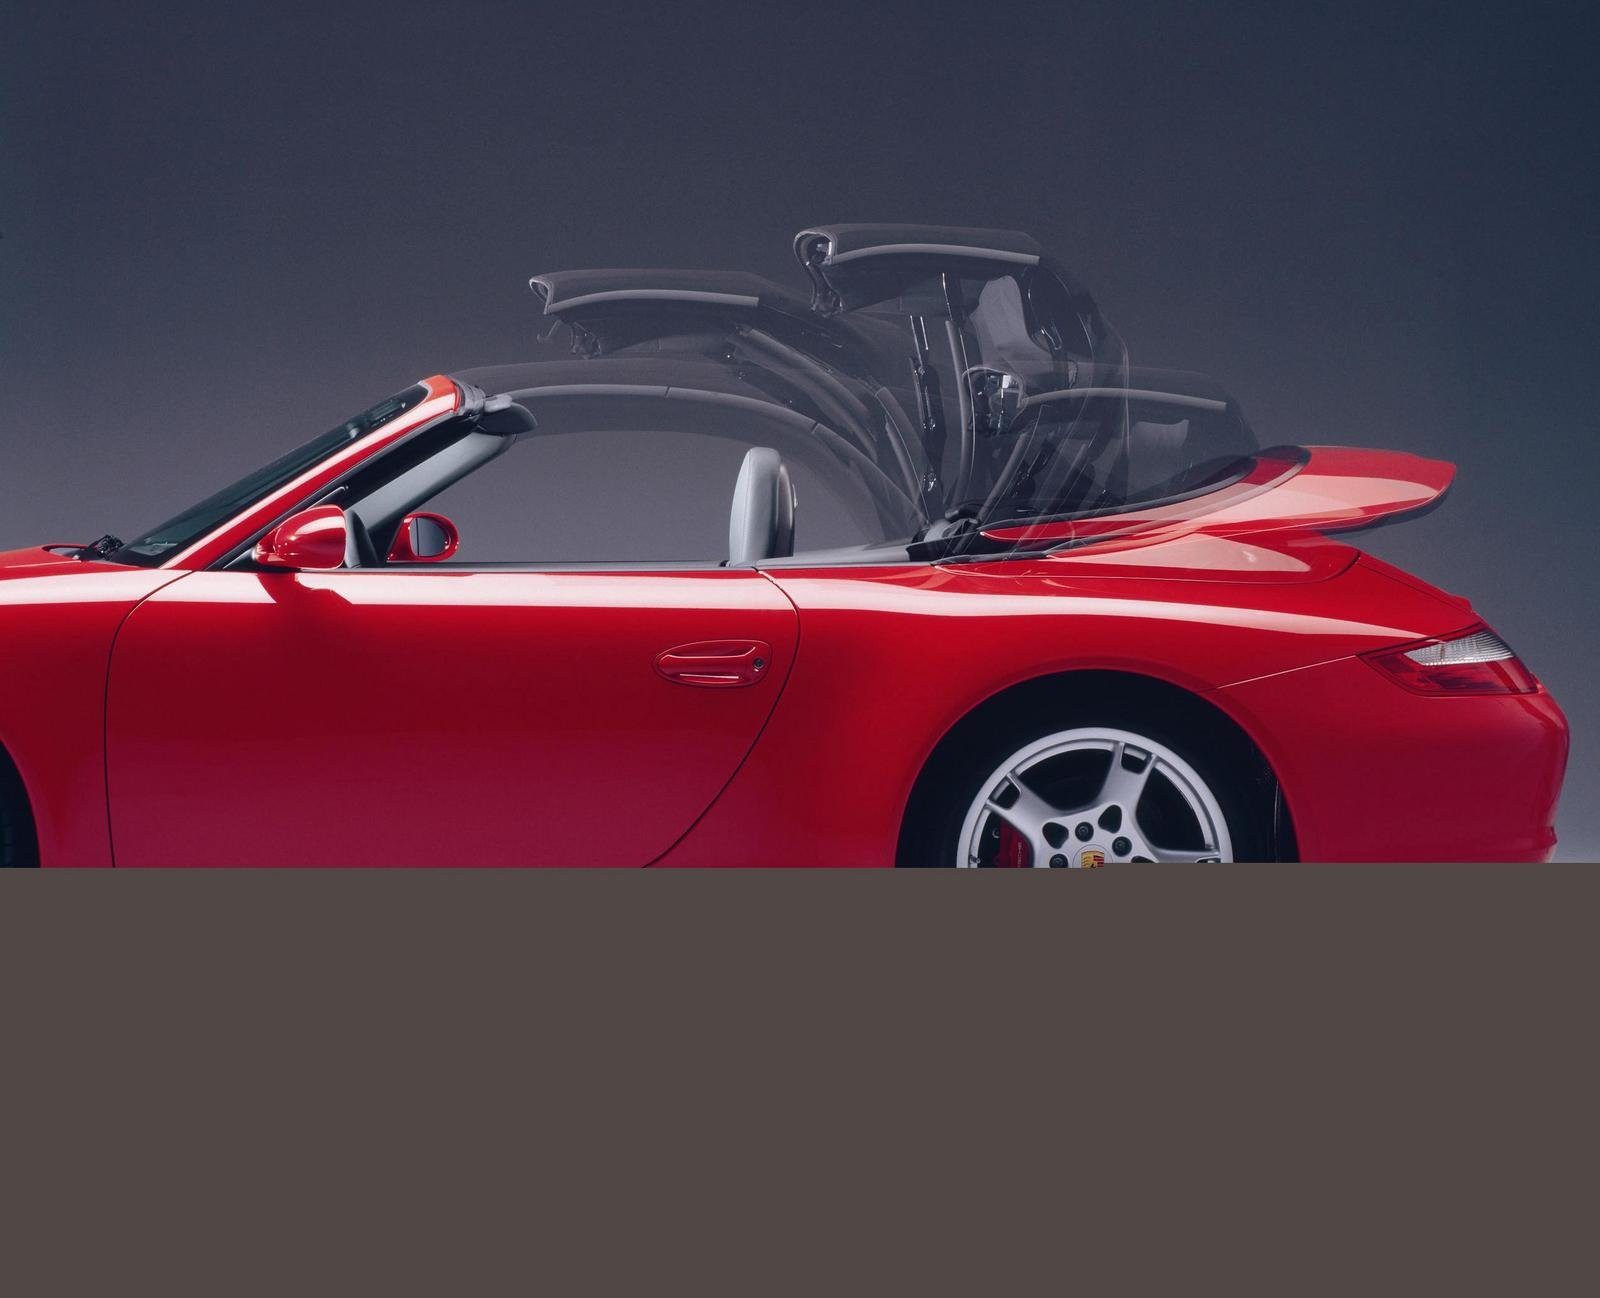 2005 porsche 911 carrera 4s 997 picture 84401 car. Black Bedroom Furniture Sets. Home Design Ideas